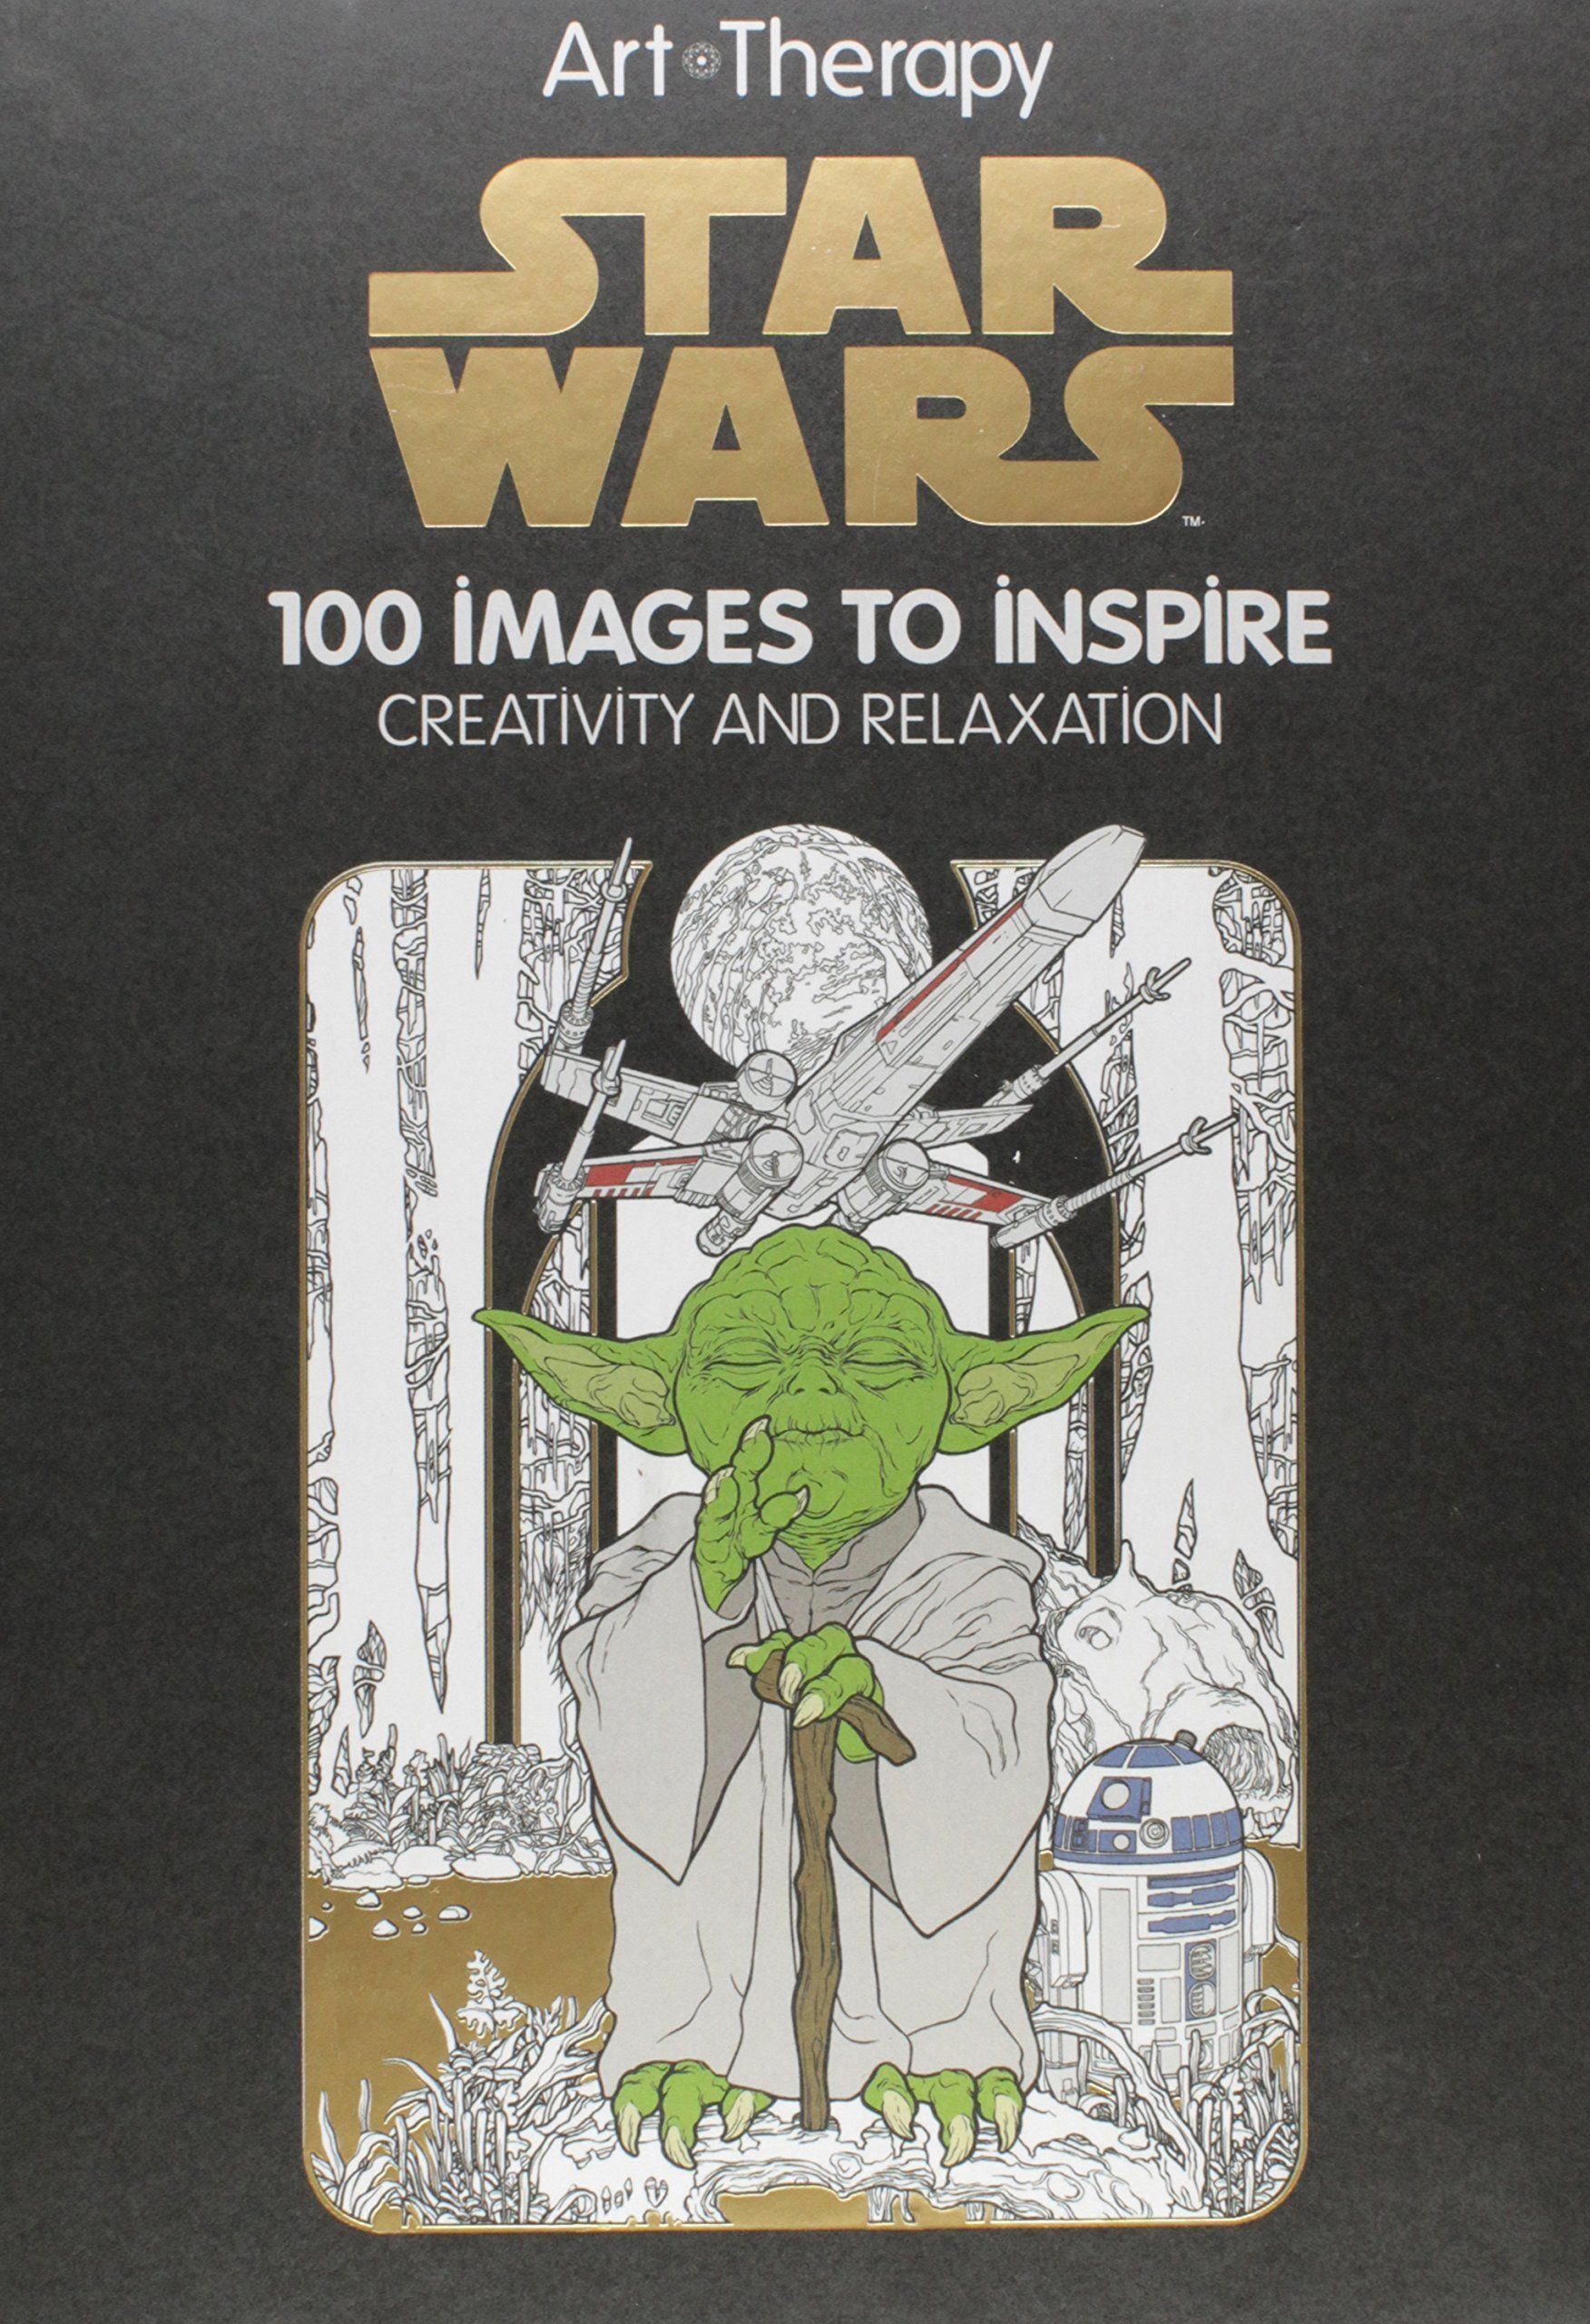 Art Of Coloring Star Wars Lovely Amazon Art Of Coloring Star Wars 100 To Inspire Star Wars Coloring Book Coloring Books Book Art